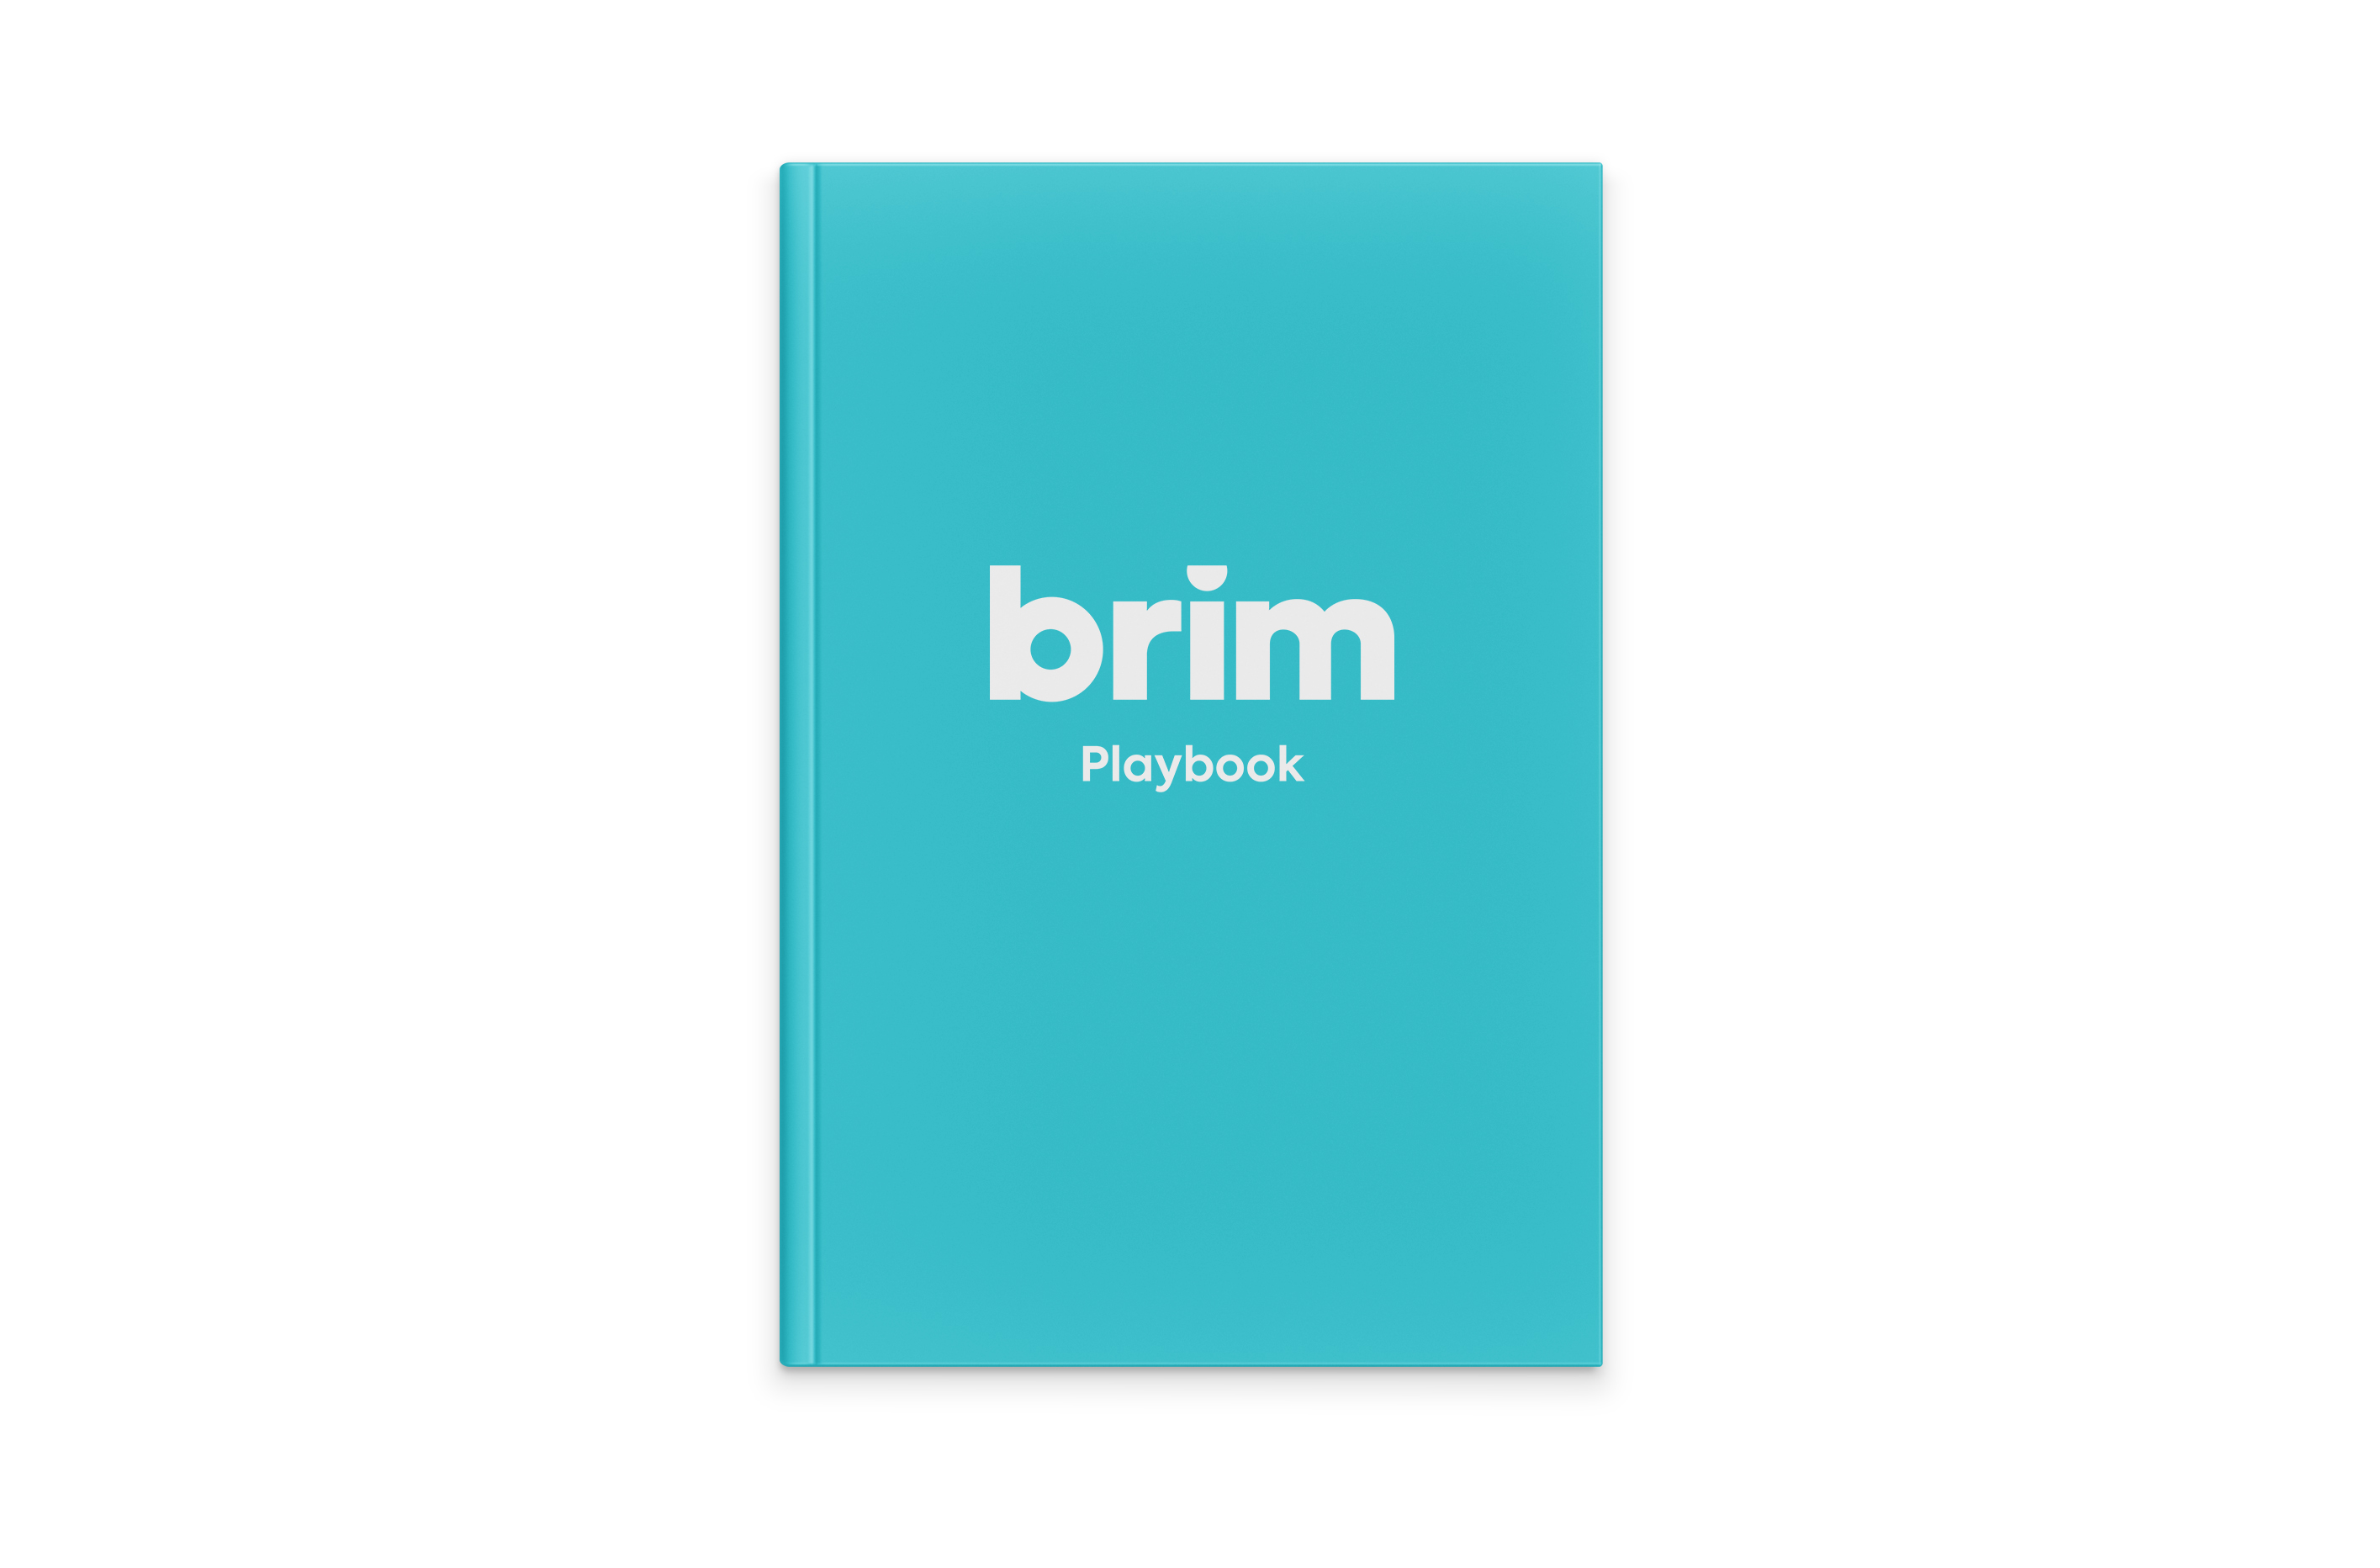 Brim Playbook